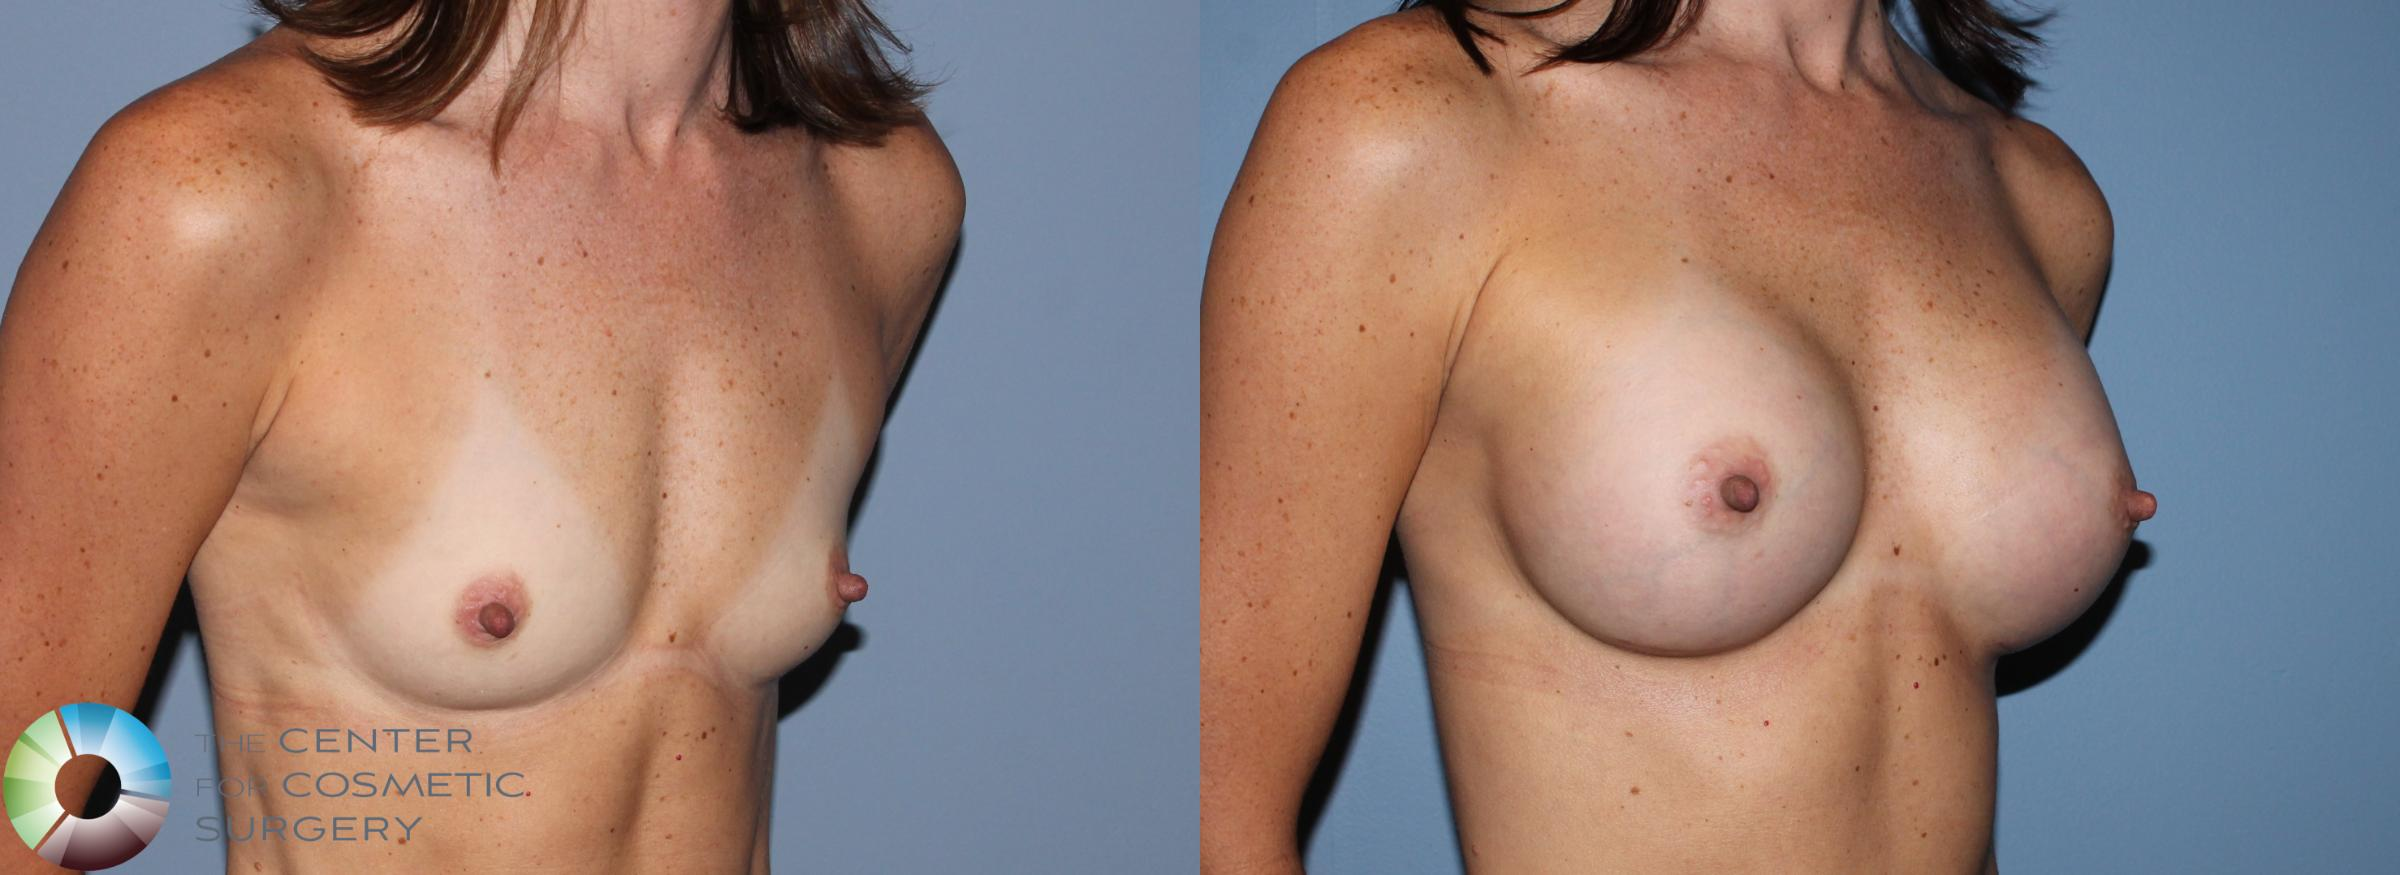 Breast Augmentation Case 756 Before & After View #2 | Golden, CO | The Center for Cosmetic Surgery